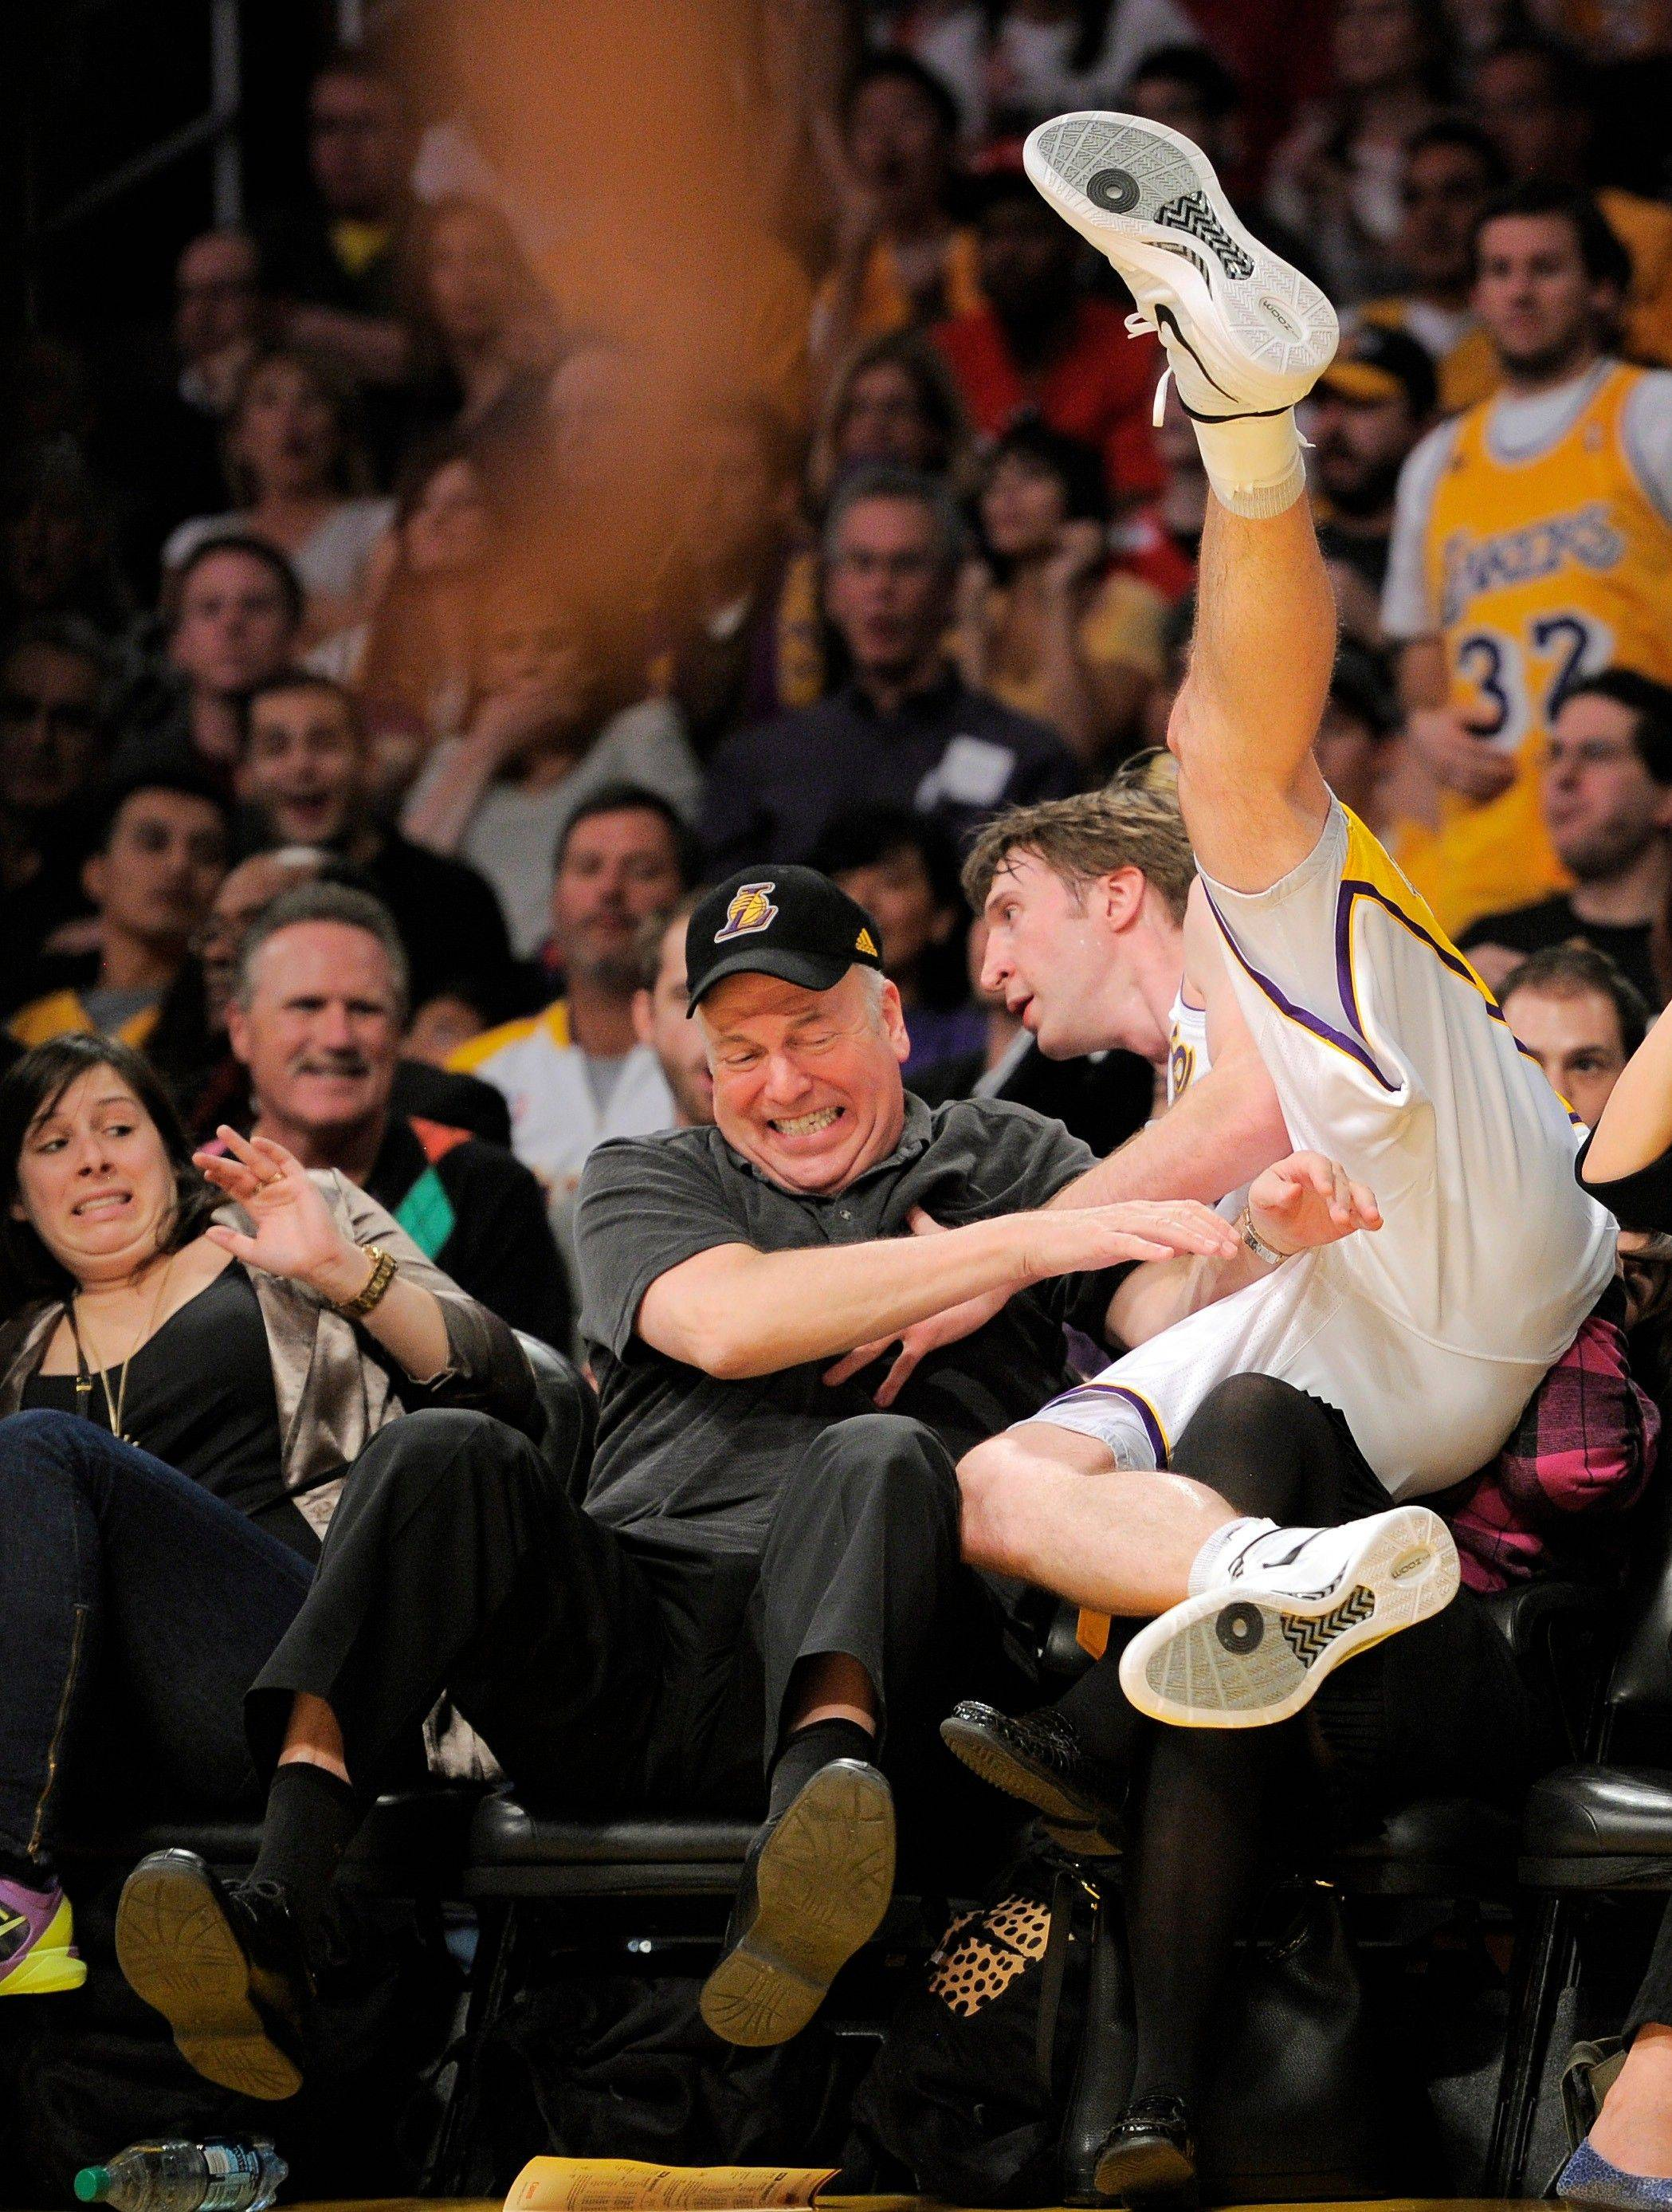 Los Angeles Lakers forward Troy Murphy falls into the crowd as he goes after a loose ball Sunday against the Bulls.